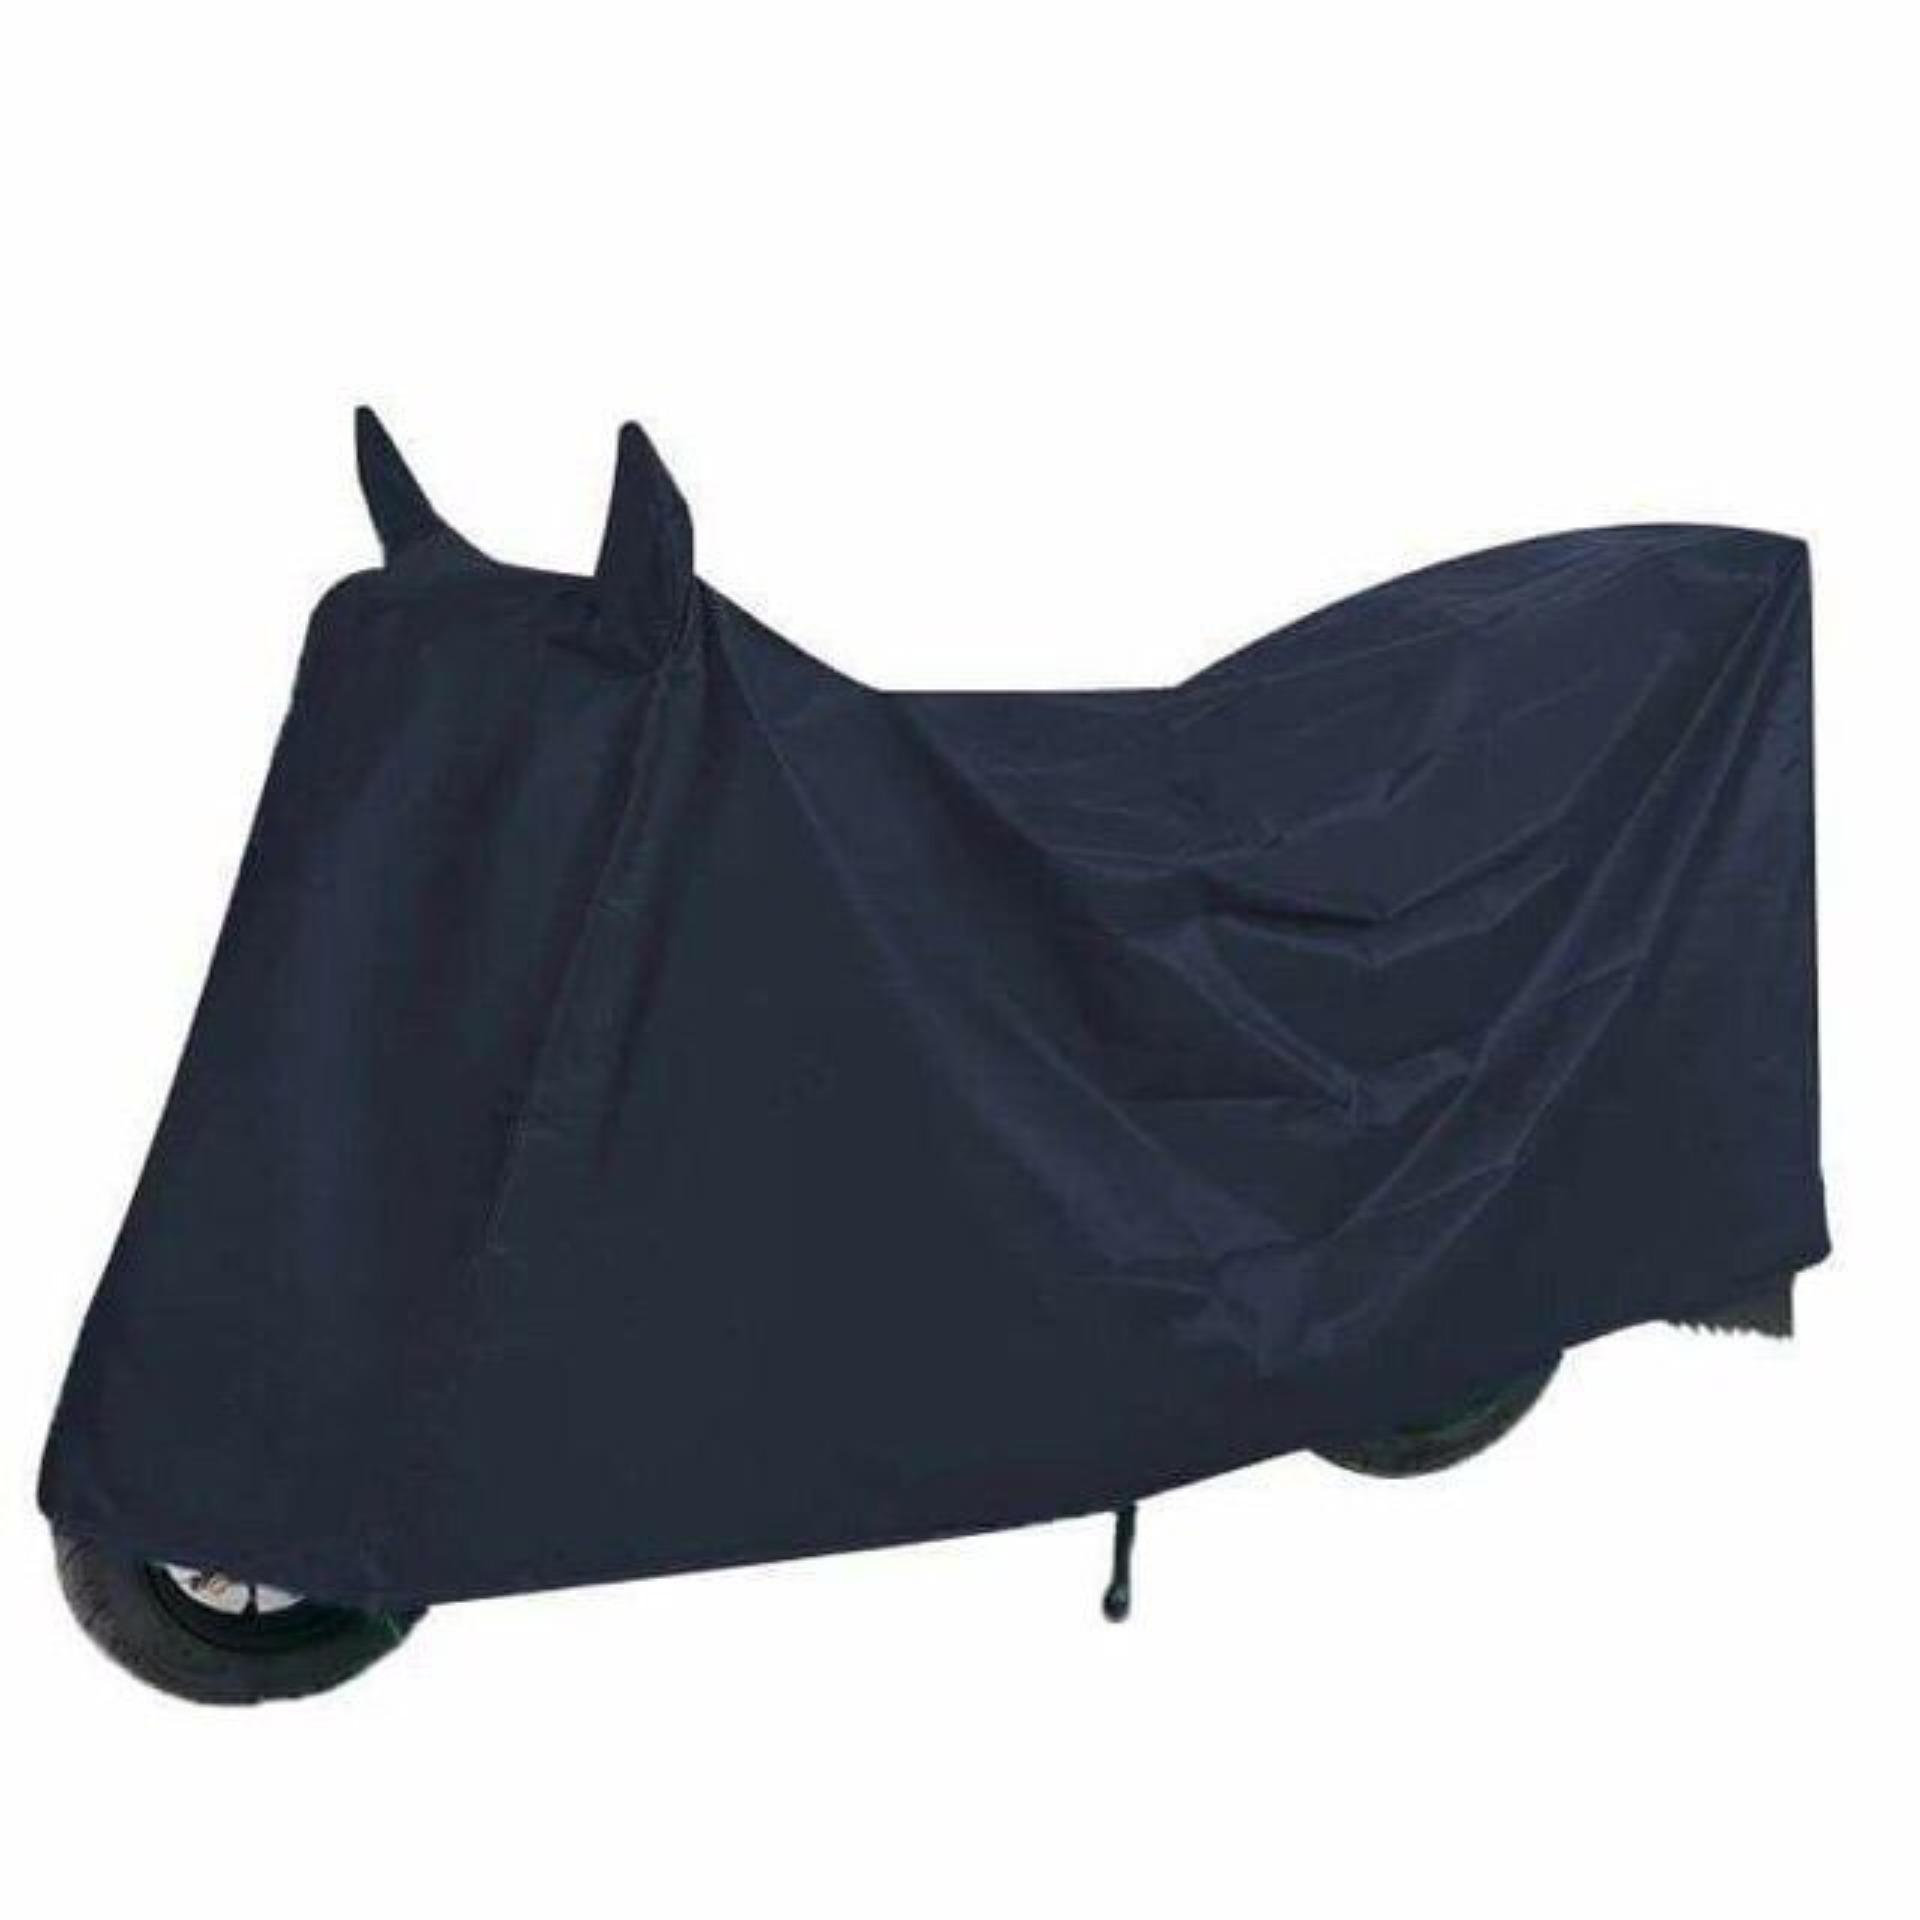 Waterproof Motorcycle Cover (l-Black) By Kinggo Shop.